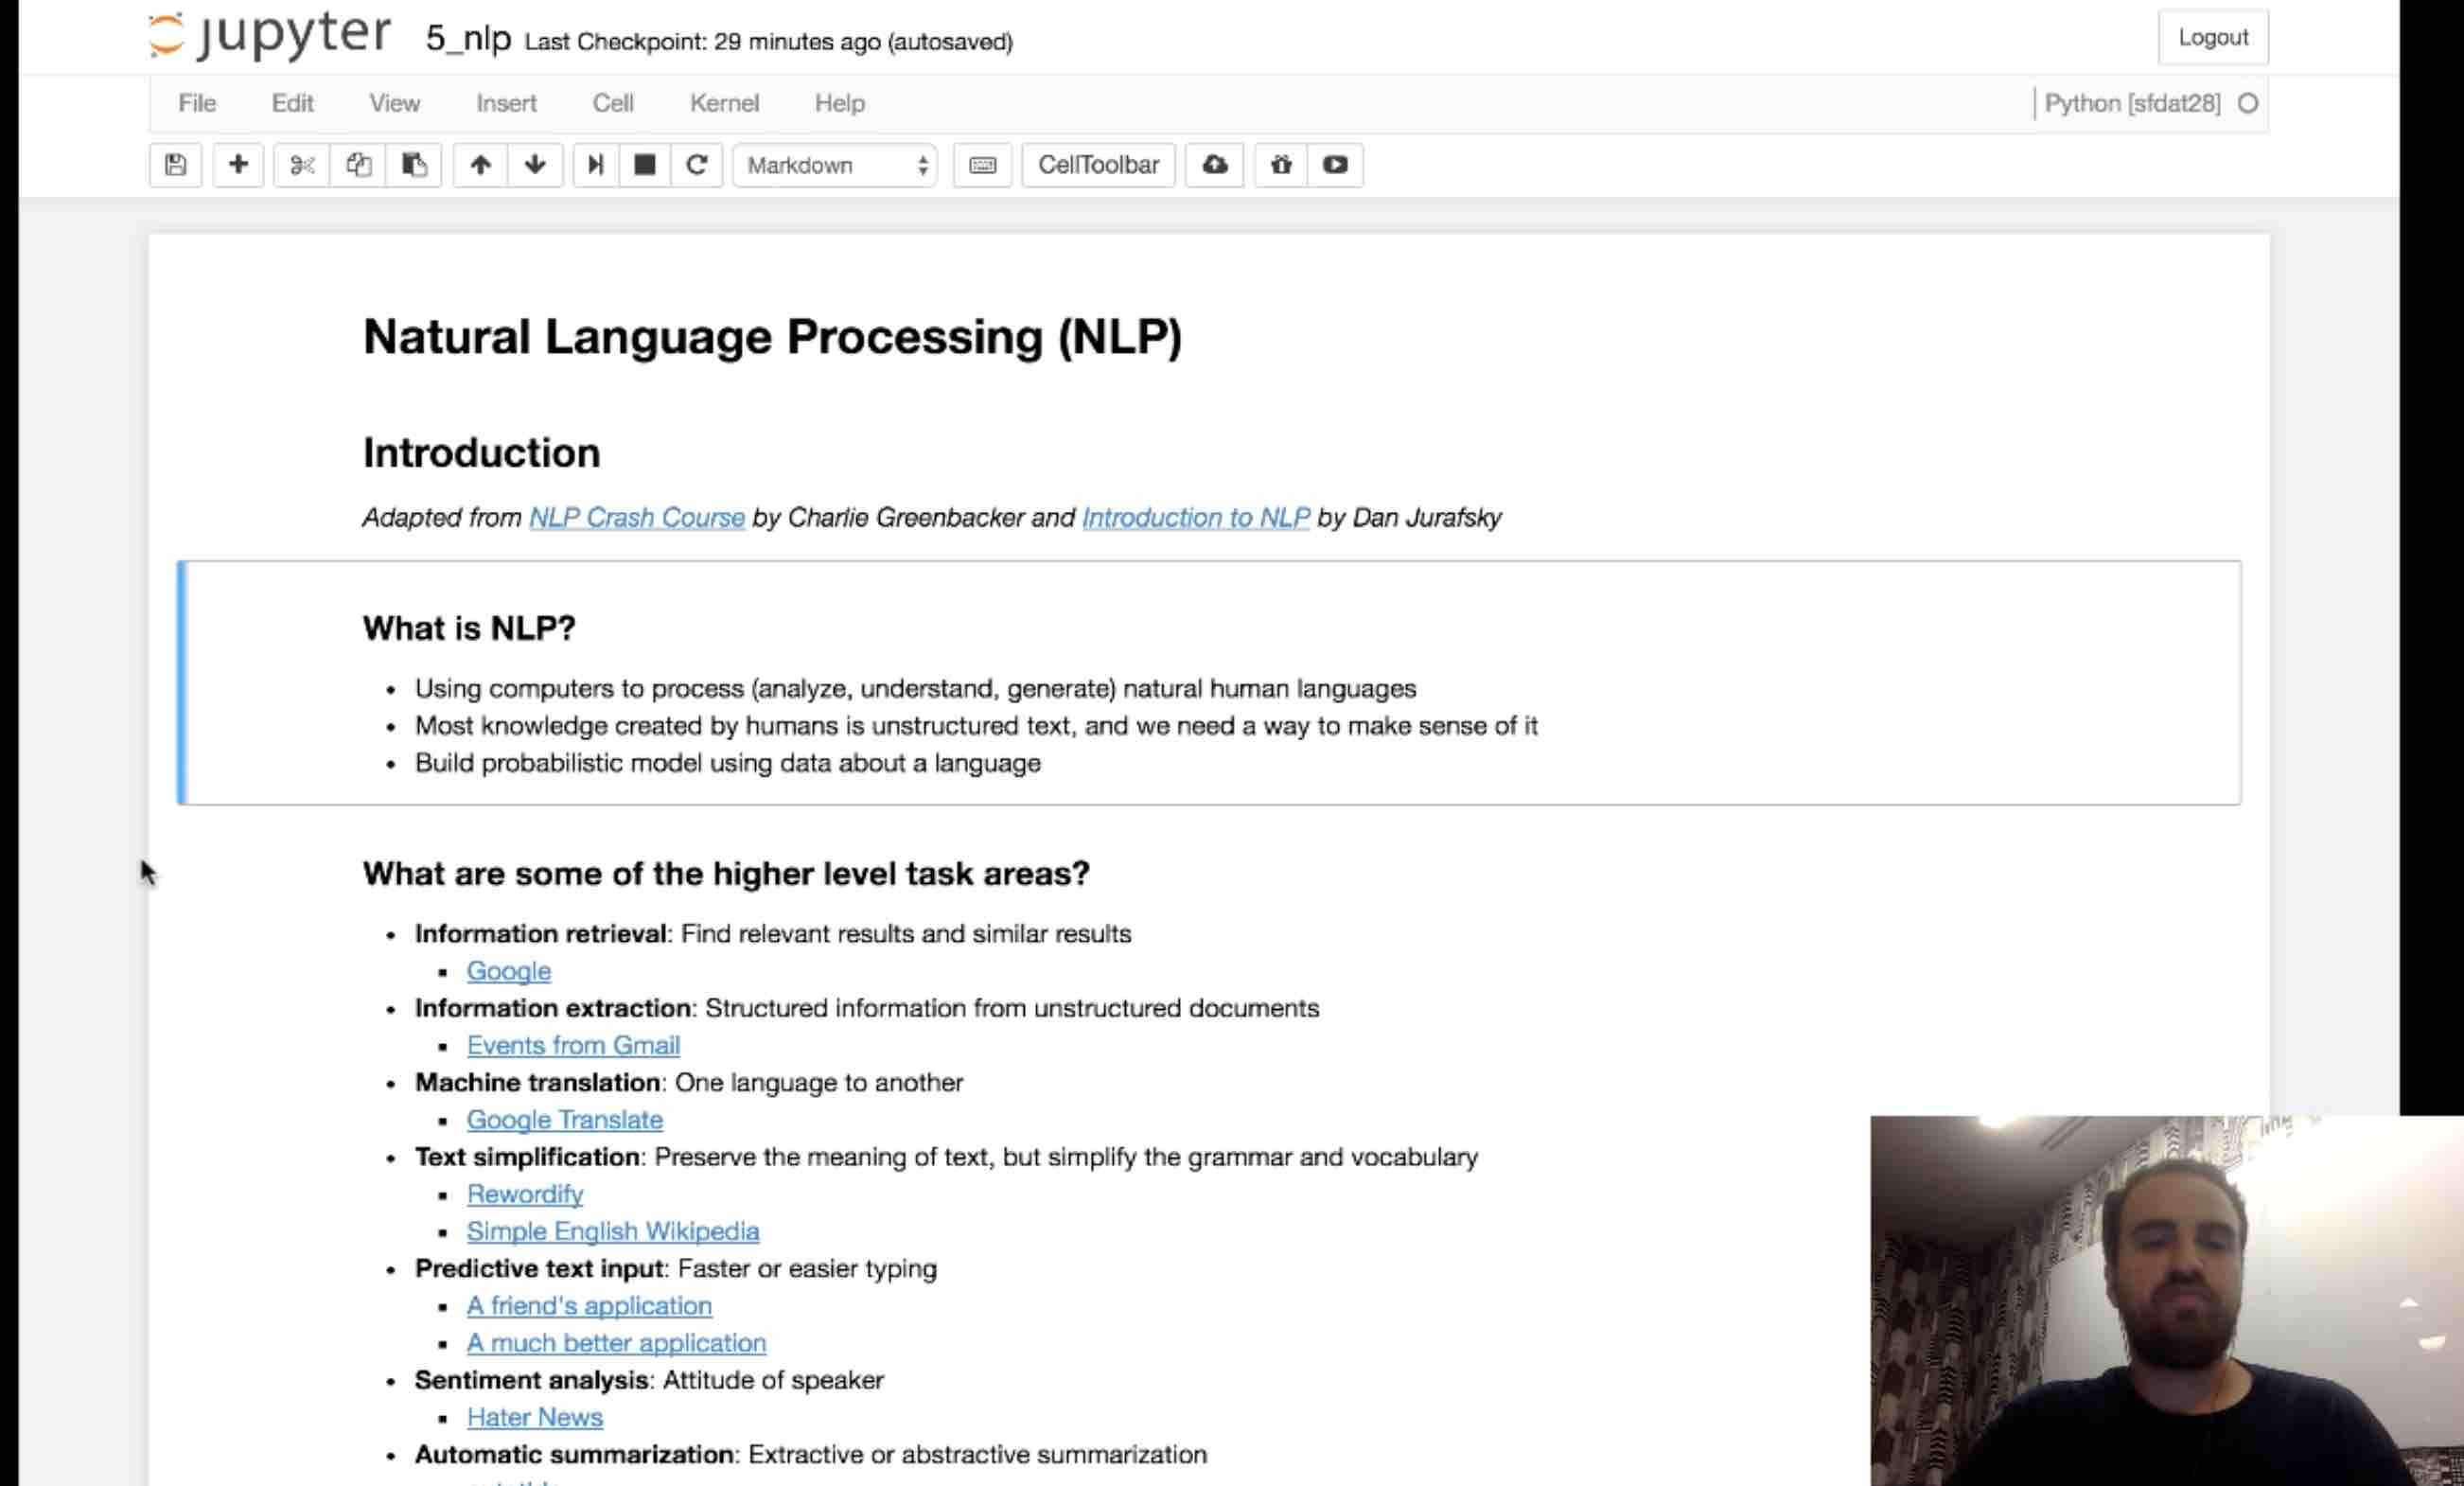 Module 5: Natural Language Processing Part 1